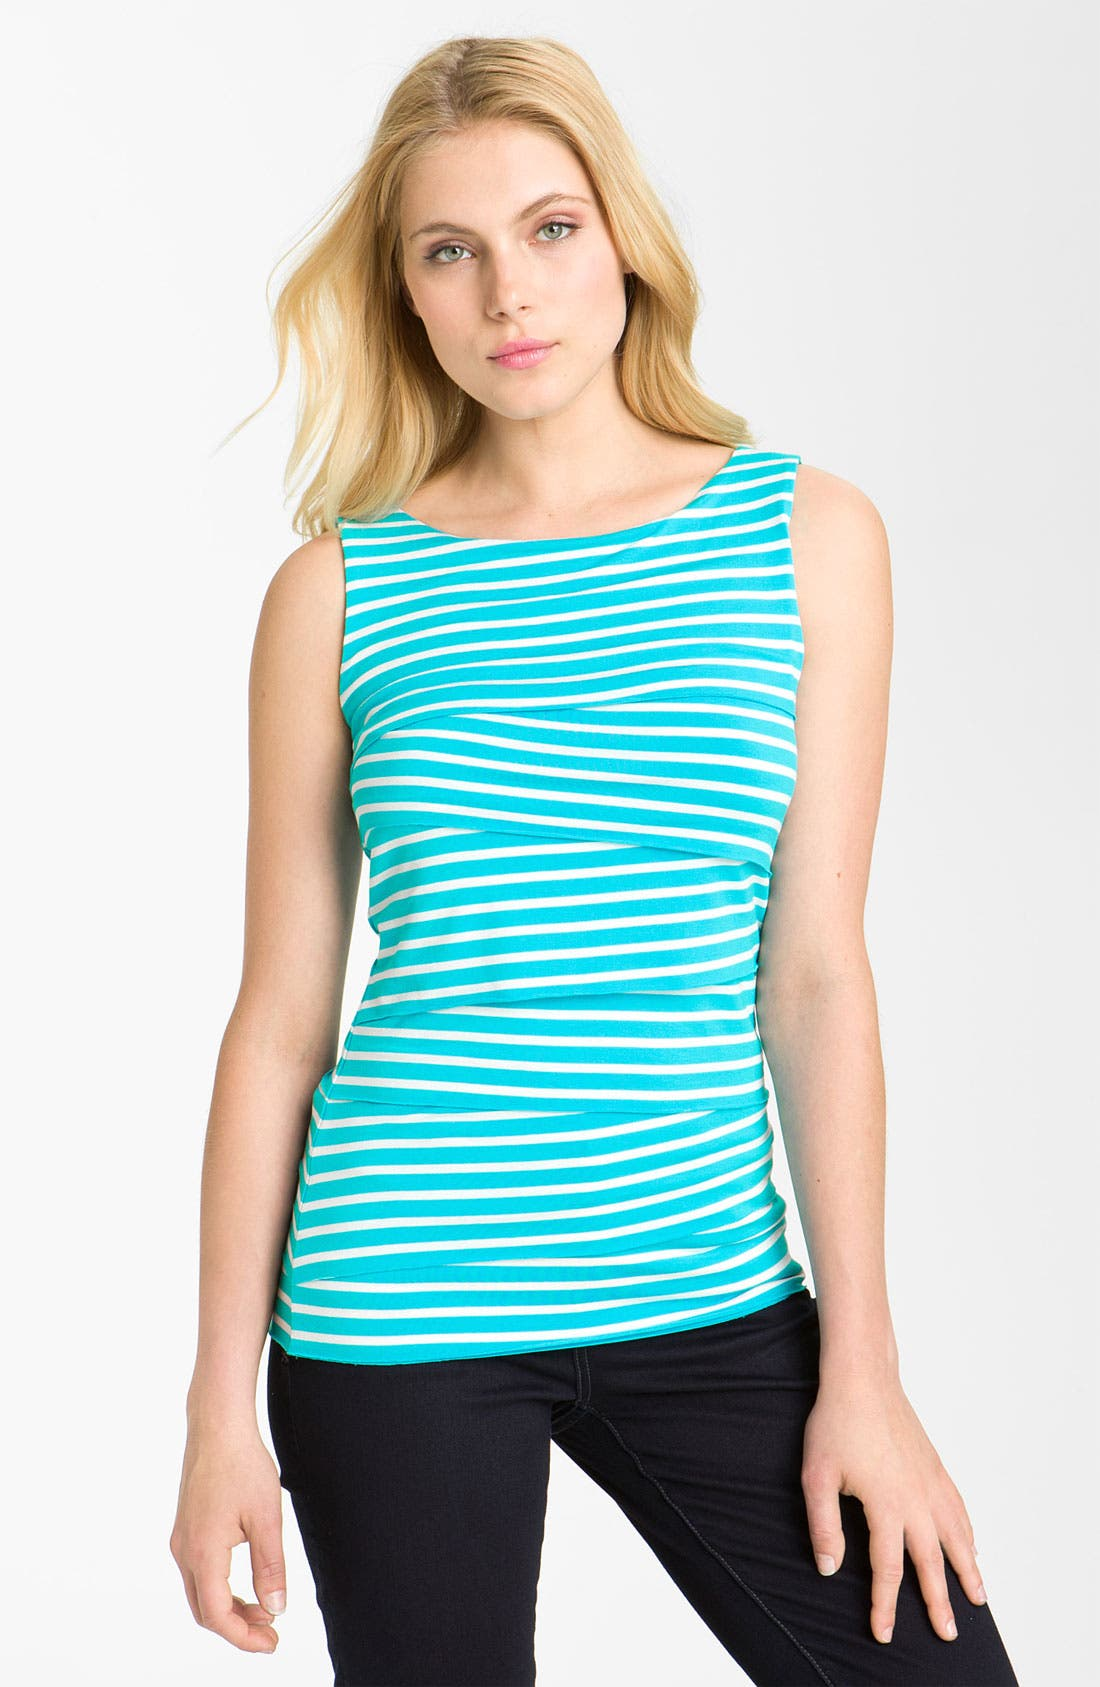 Alternate Image 1 Selected - Vince Camuto Zigzag Tiered Jersey Top (Petite)